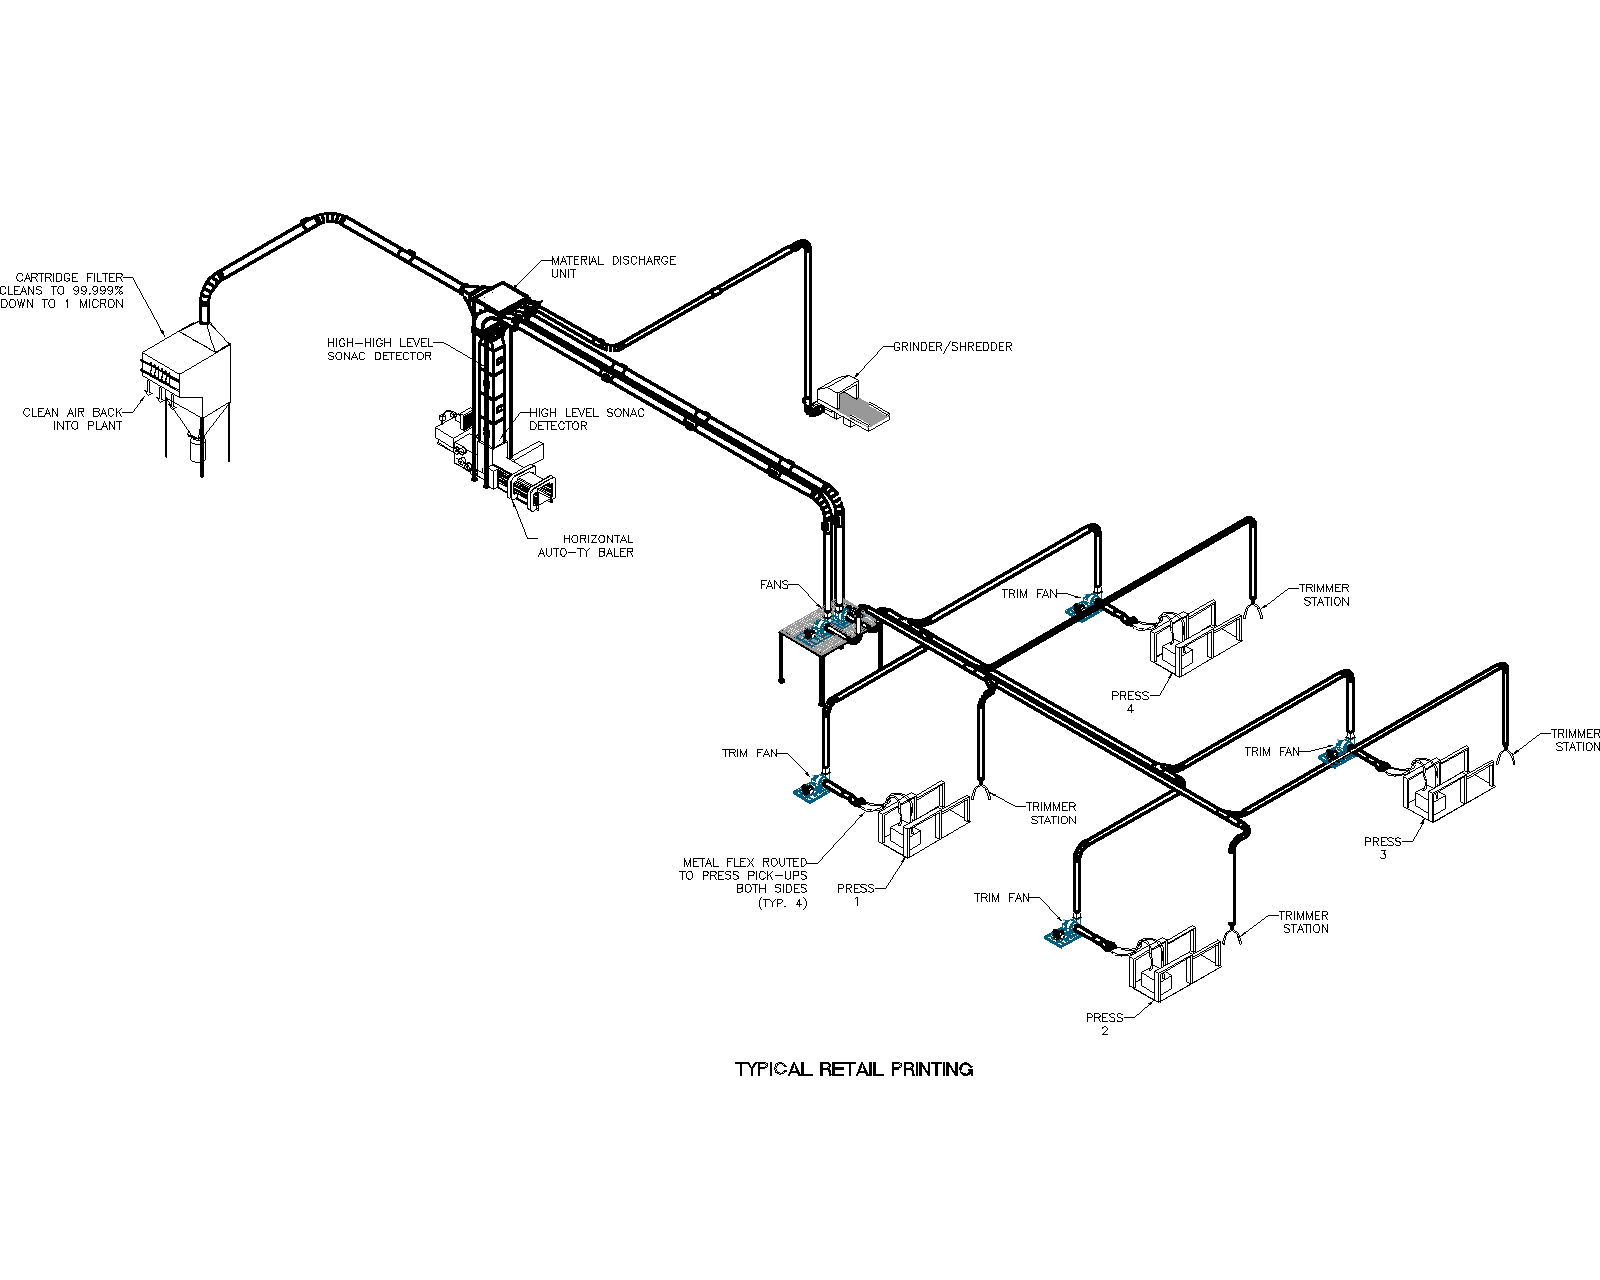 Retail Printing Trim System Illustration by Air Systems Design for the most efficient pneumatic conveying systems.